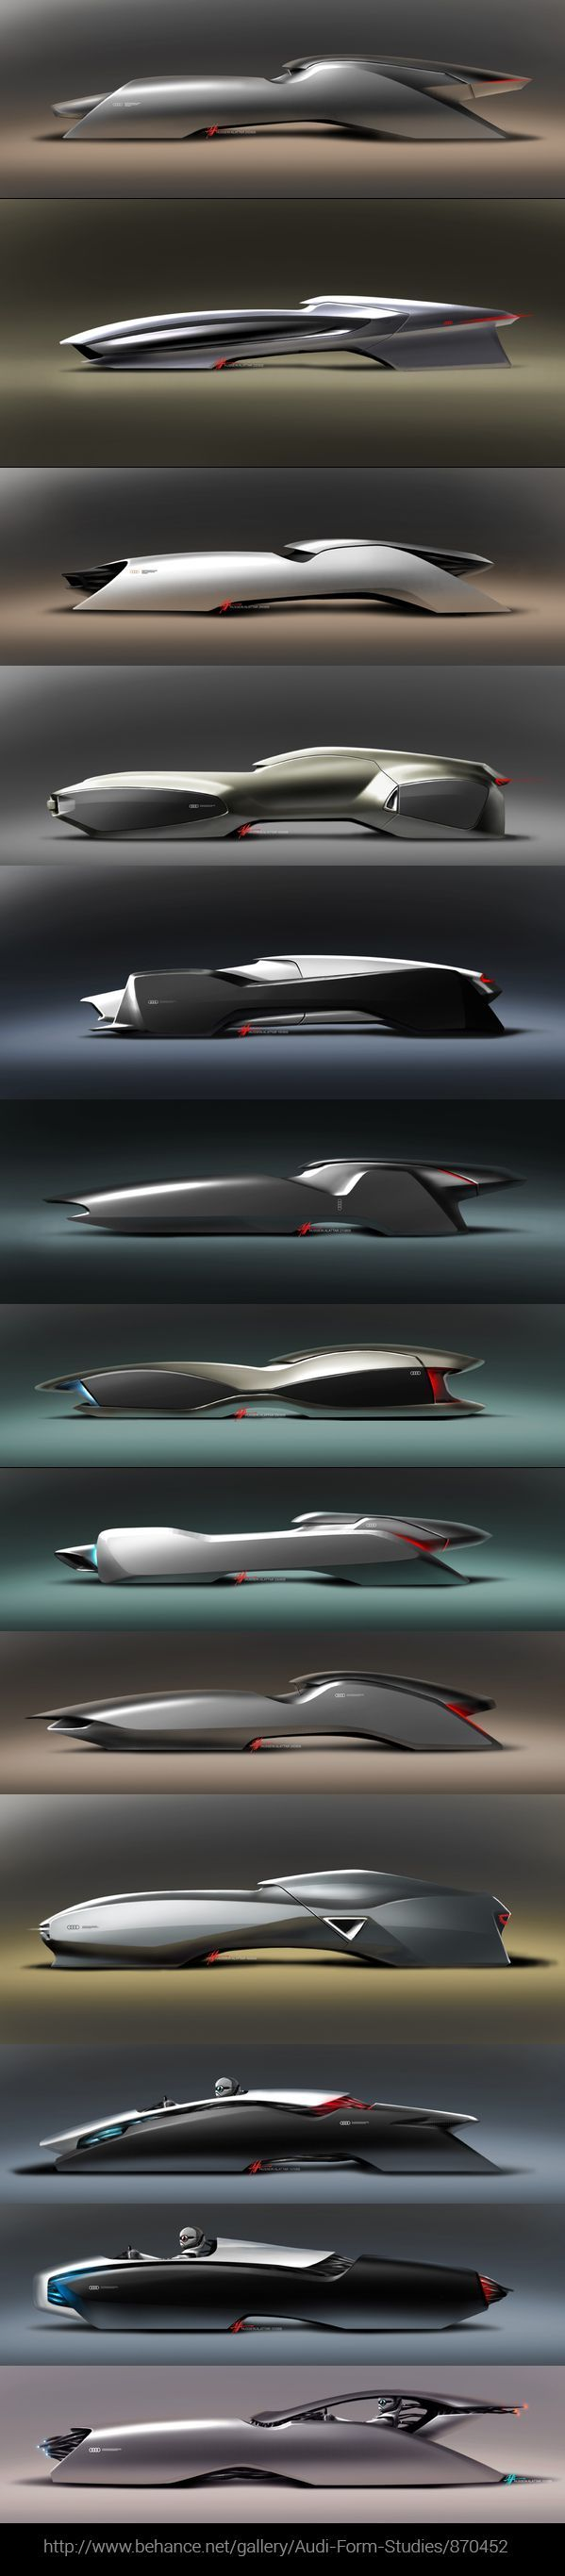 Audi Form Studies/870452 by Hussein Al-Attar - more amazing cars here: http://themotolovers.com